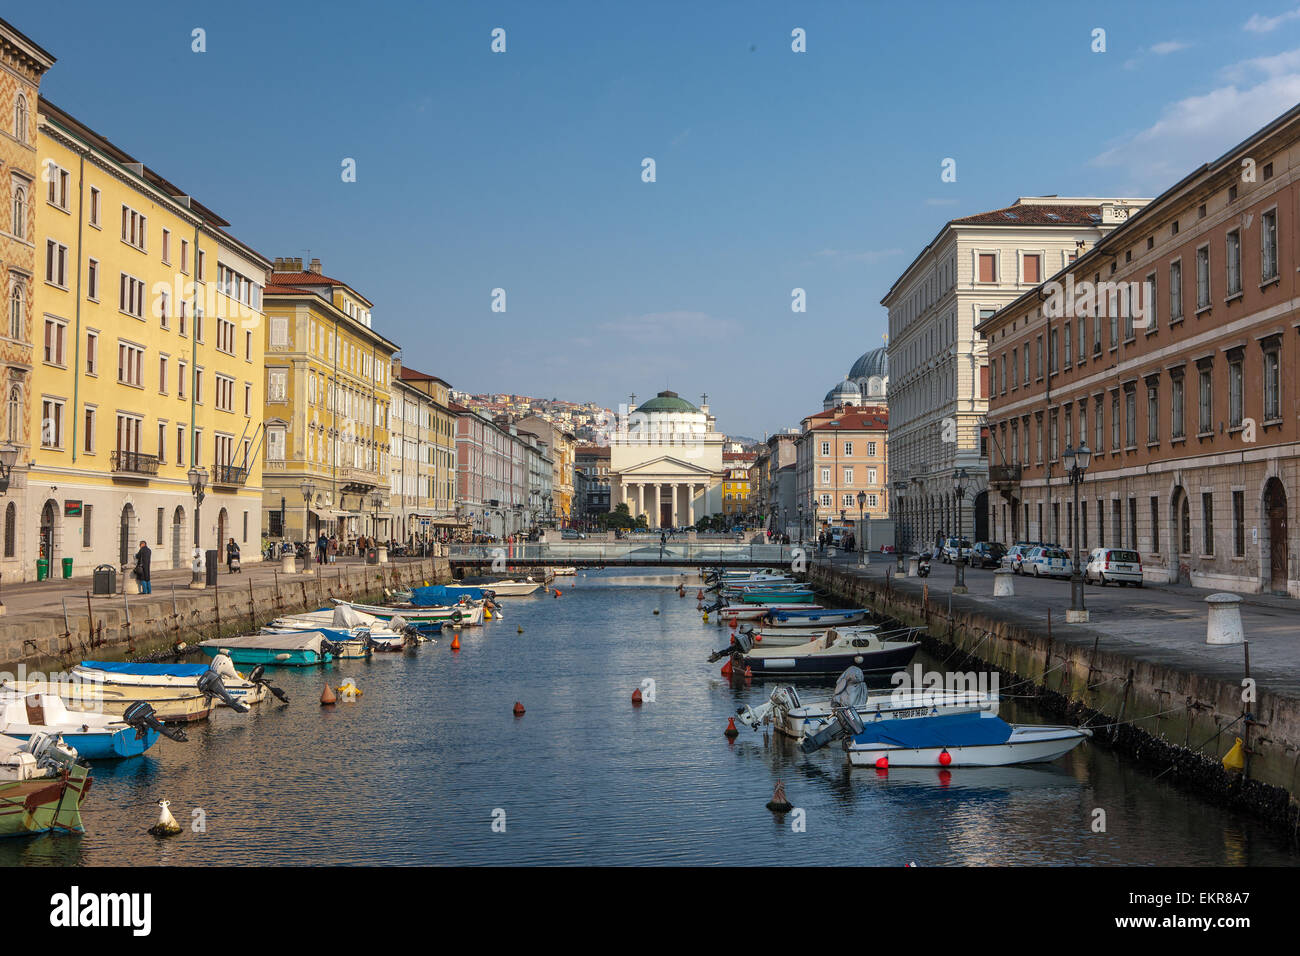 The so-called 'Grande Canale' in Trieste, a city in the northeast of Italy on the Adriatic Sea. - Stock Image